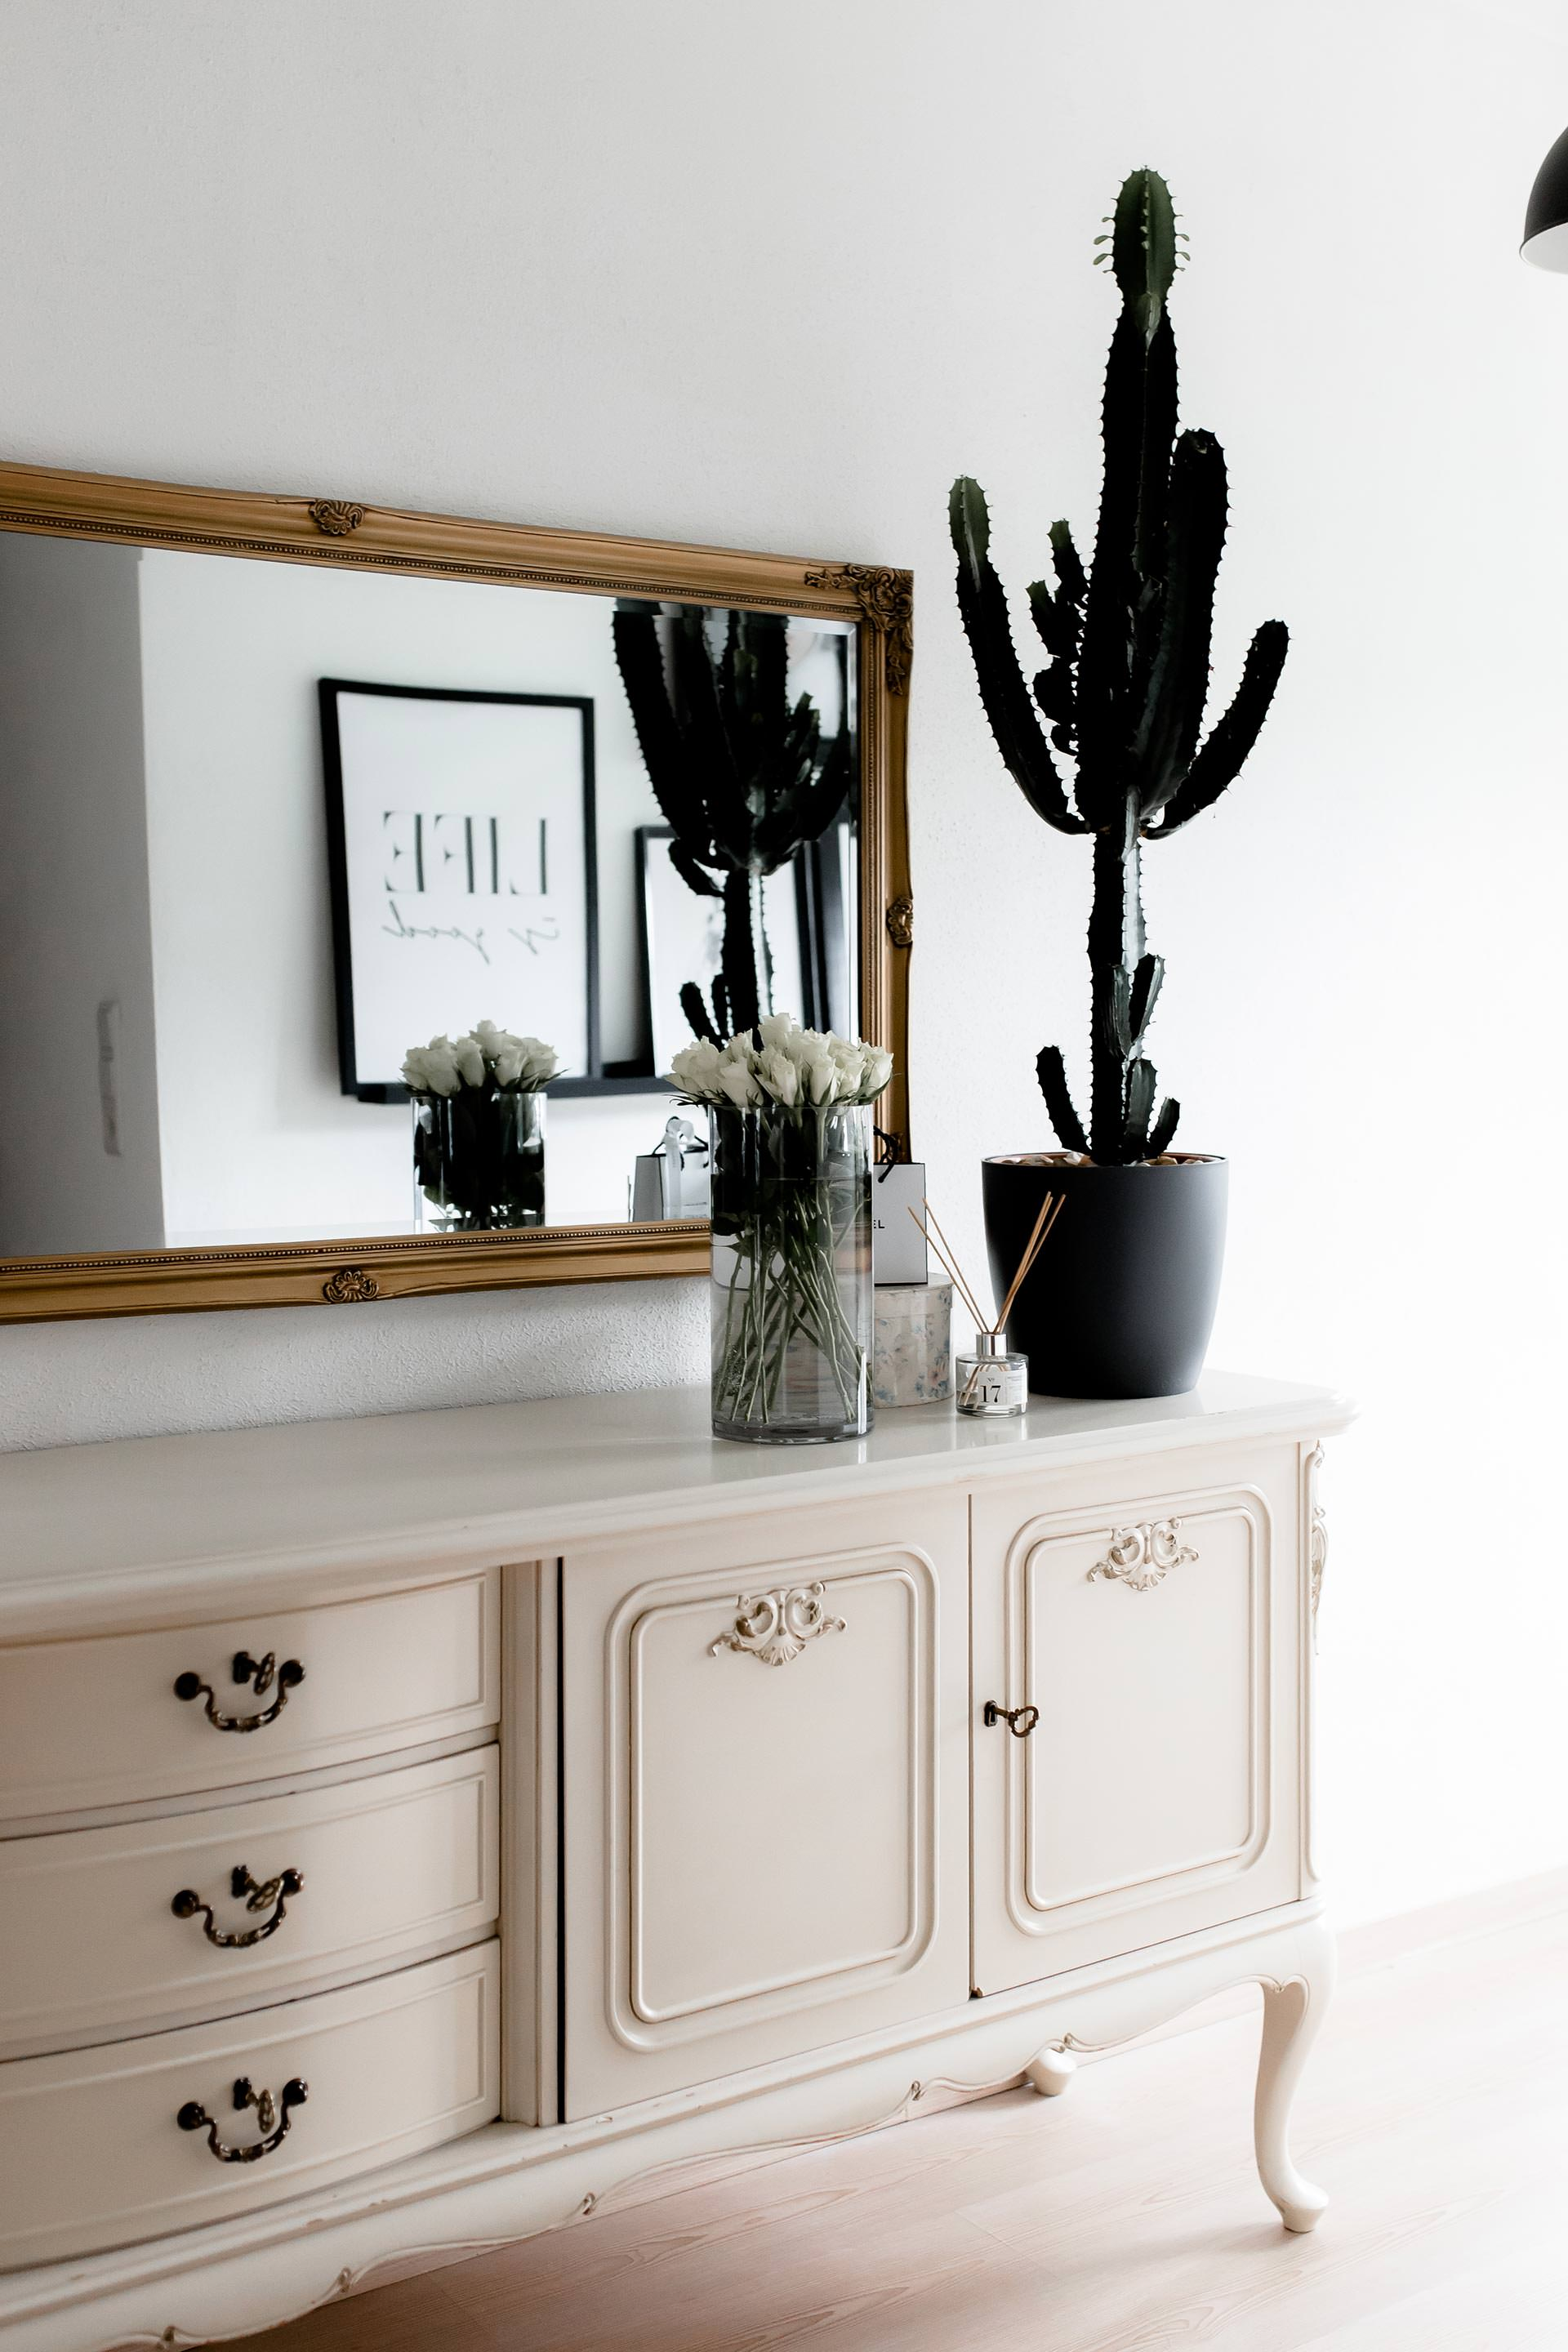 wohin mit den alten m beln tipps f r interior junkies und upcycling fans. Black Bedroom Furniture Sets. Home Design Ideas